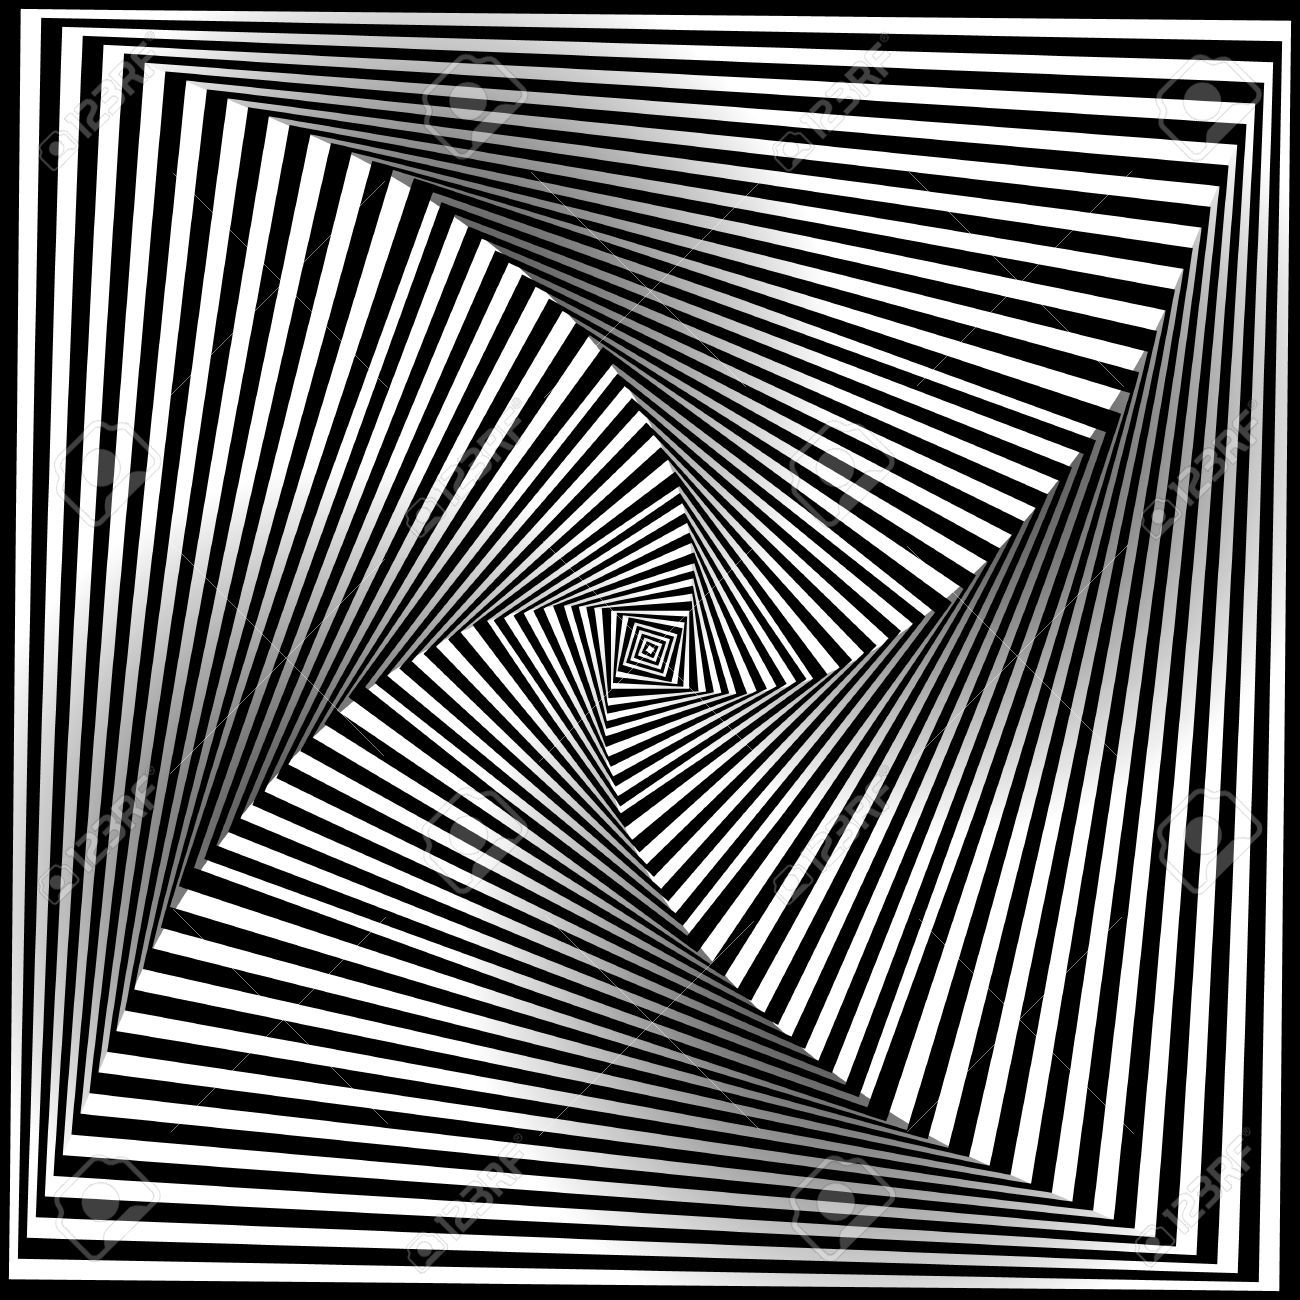 Line Optical Designing : Spiral optical illusion abstract black and white